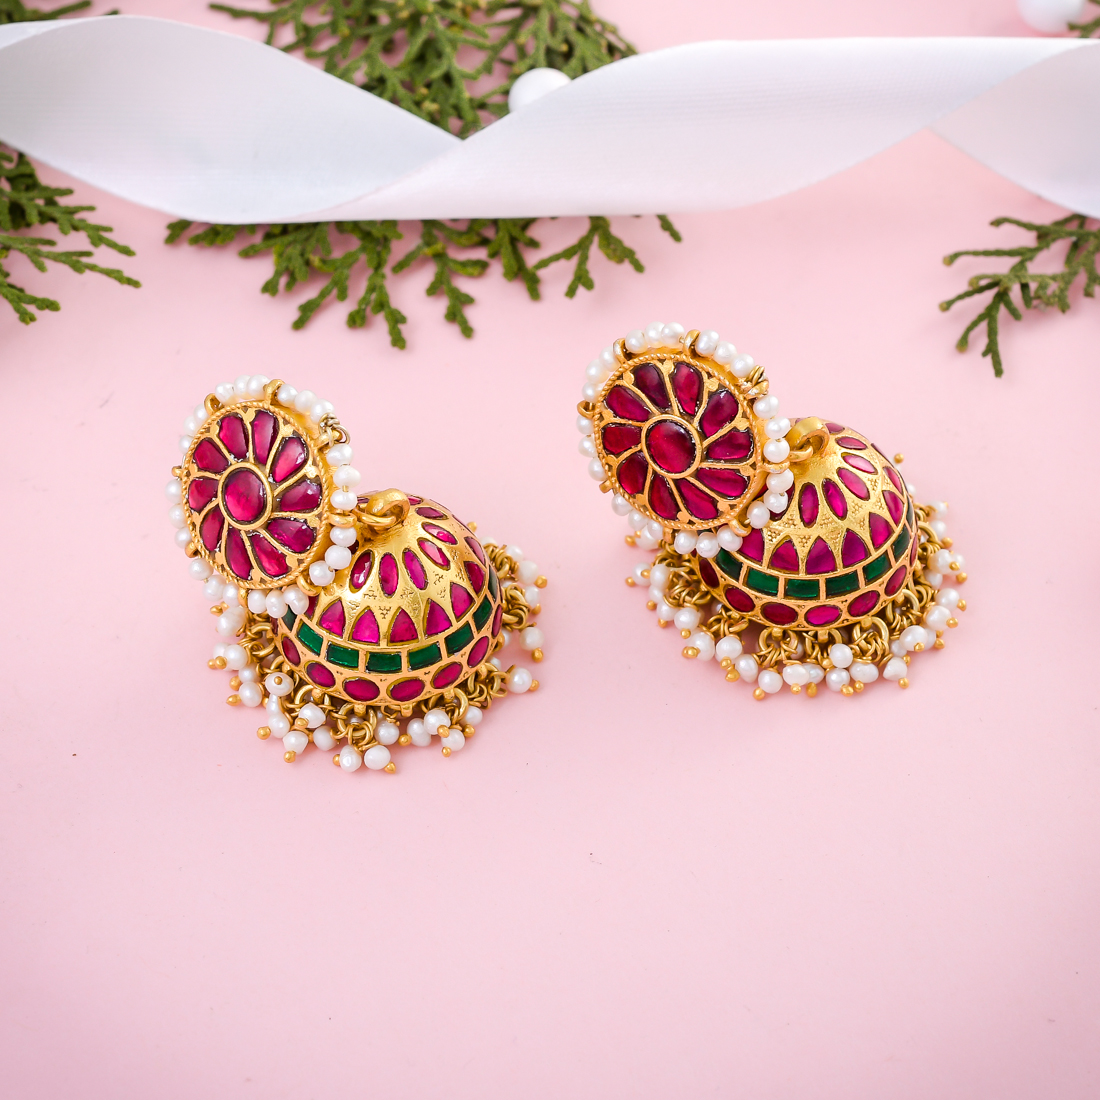 Aren't Silver Jhumkas #fancy  #silver Jhumkas can be worn every day as it makes you #glow a little more. Buy these #amazing silver Jhumkas here http://shorturl.at/jNWX3  #925silver #WelcomeBackSid #WednesdayWisdom #WednesdayMotivation #wednesdaymorning #10YearsOfVTV #DemDebatepic.twitter.com/3CrvXy30Ek